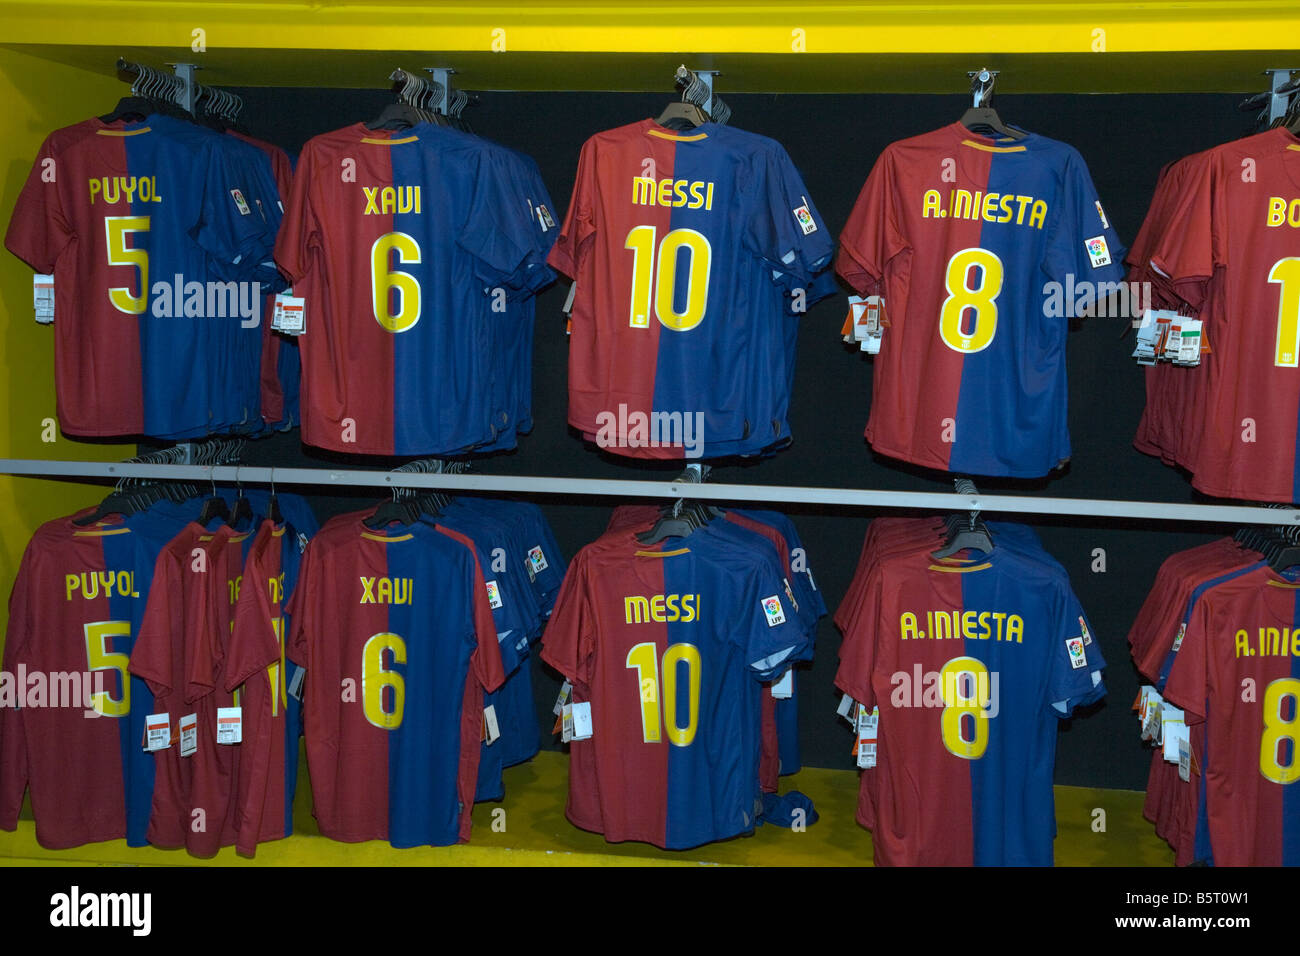 92f60ddf7 Botiga del Barça the FC Barcelona club shop selling all the latest football  shirts of the best players